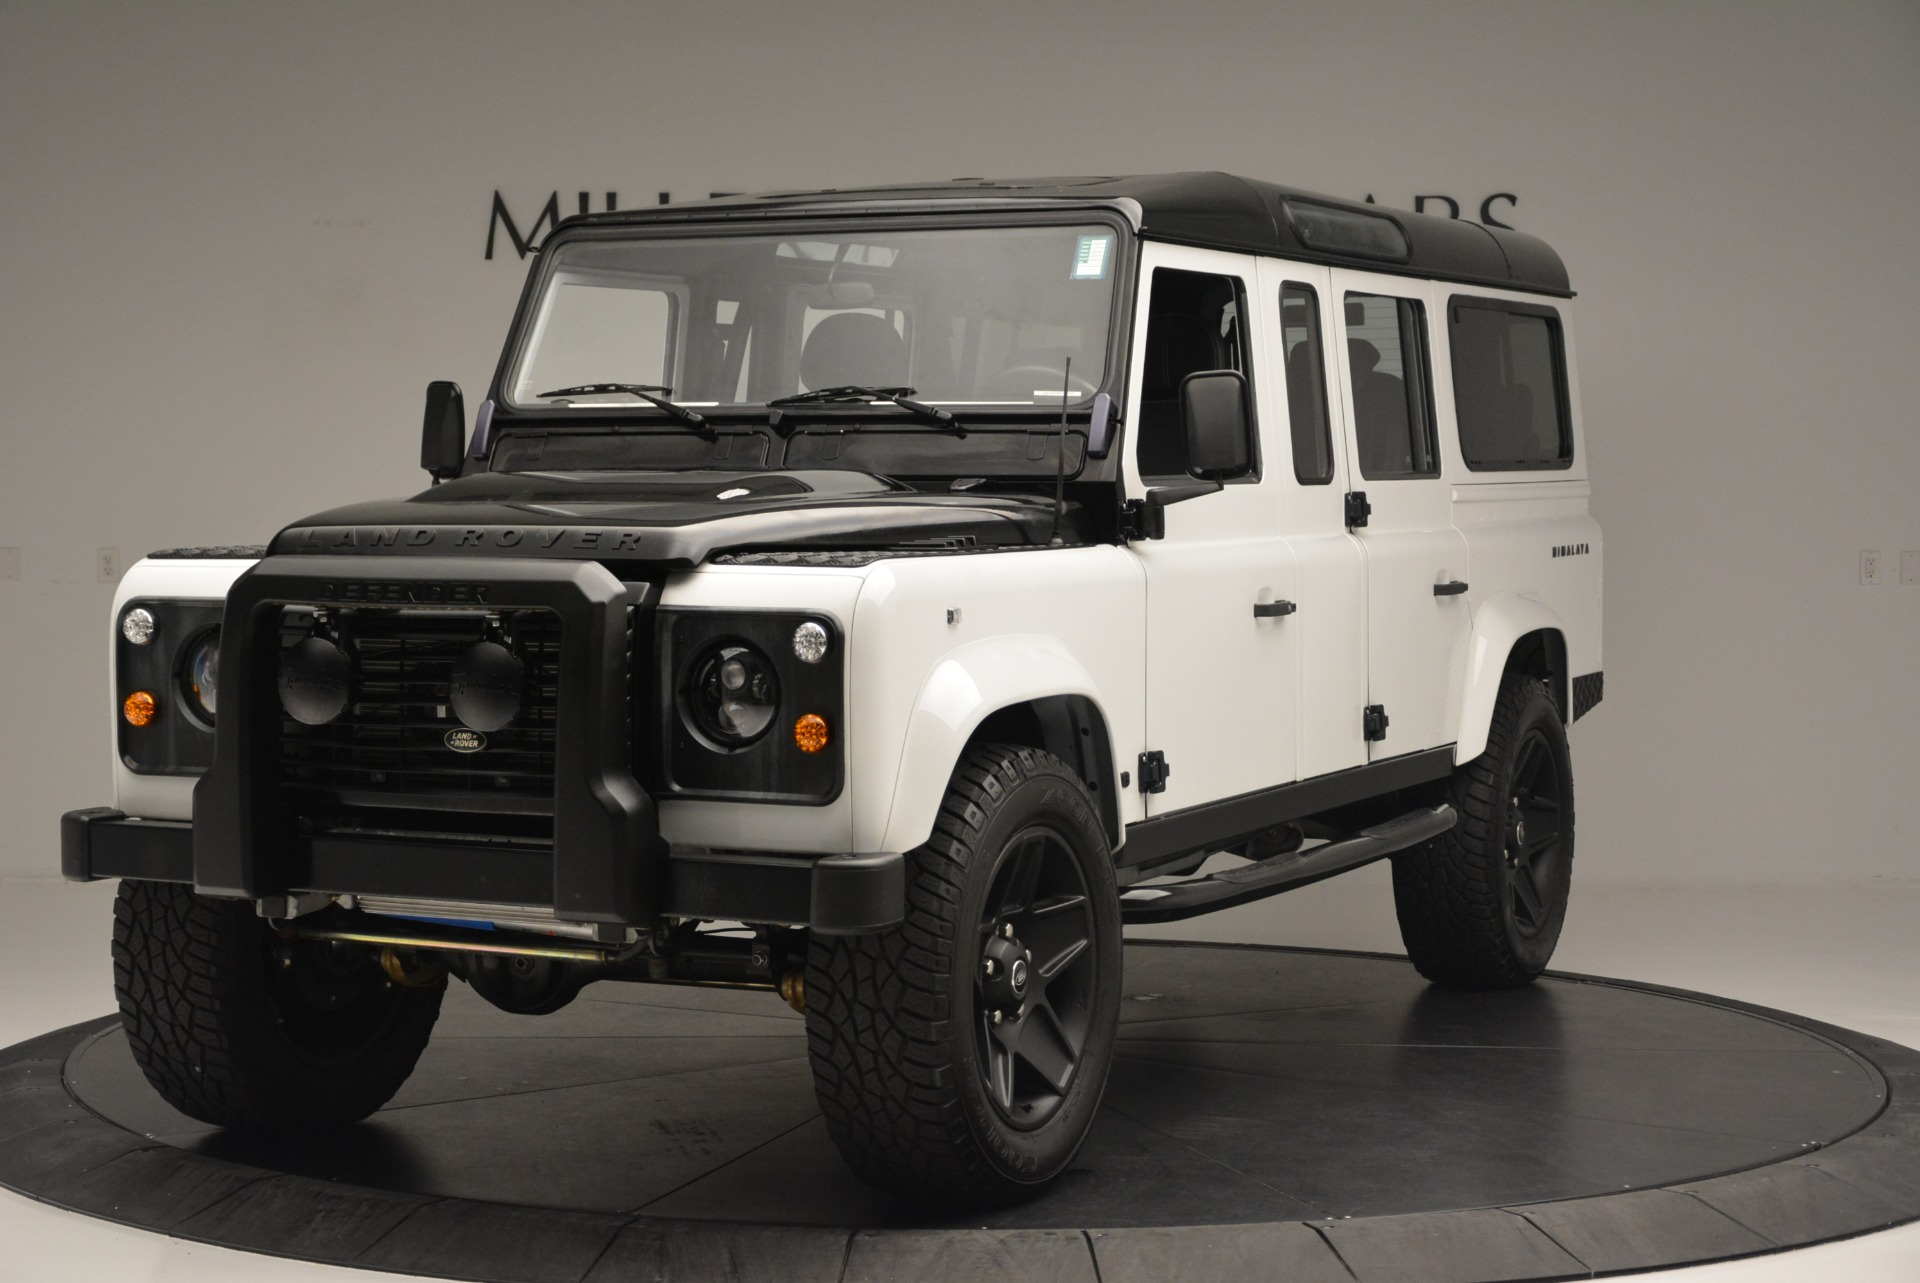 1994 land rover defender 130 himalaya stock # 7392 for sale near